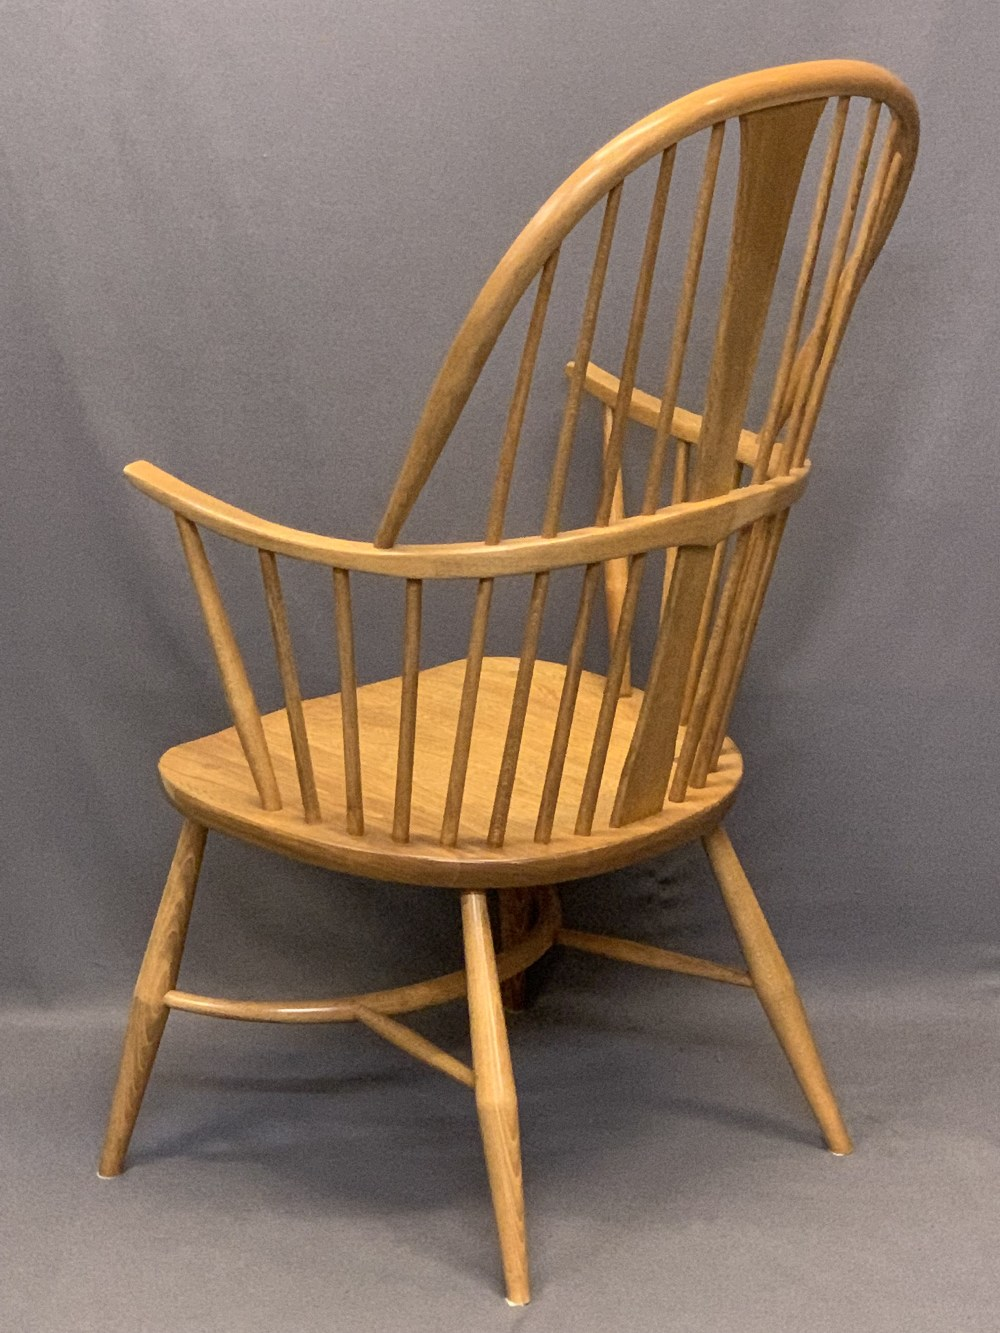 LIGHT ERCOL WINDSOR STYLE ARMCHAIR - with hoop back, crinoline type stretcher and removable - Image 3 of 5